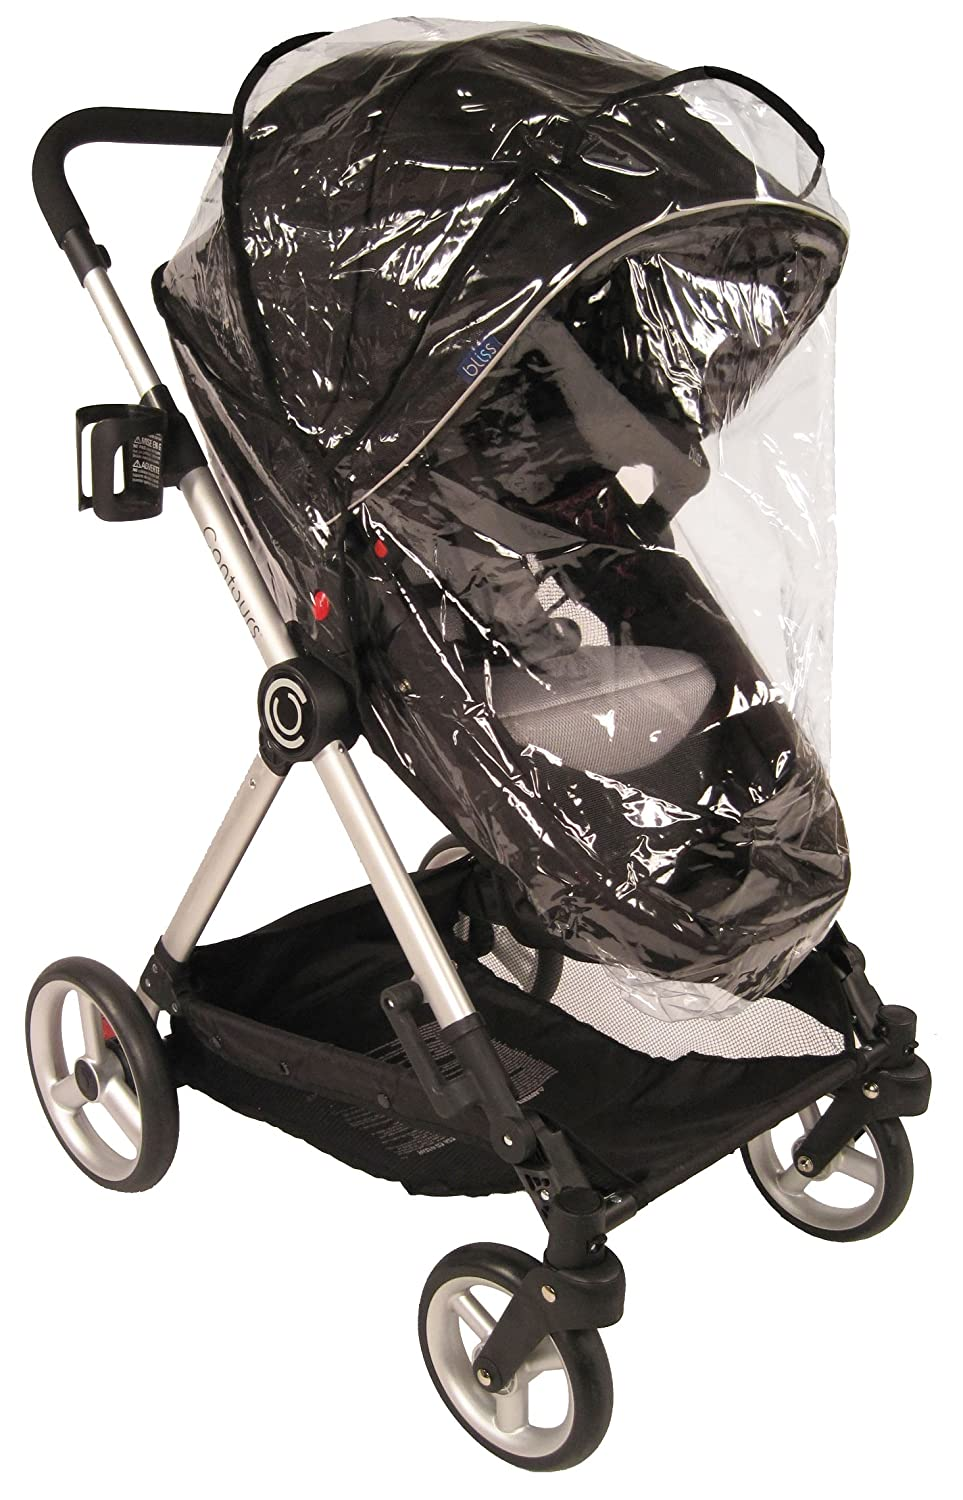 Contours Weather Shield for Contours Single and Double Strollers, Clear -Compatible with Contours Bliss, Options Elite Tandem, Options LT Tandem, Options 3-Wheel, Options Strollers, Contours Curve ZY004-BLK6